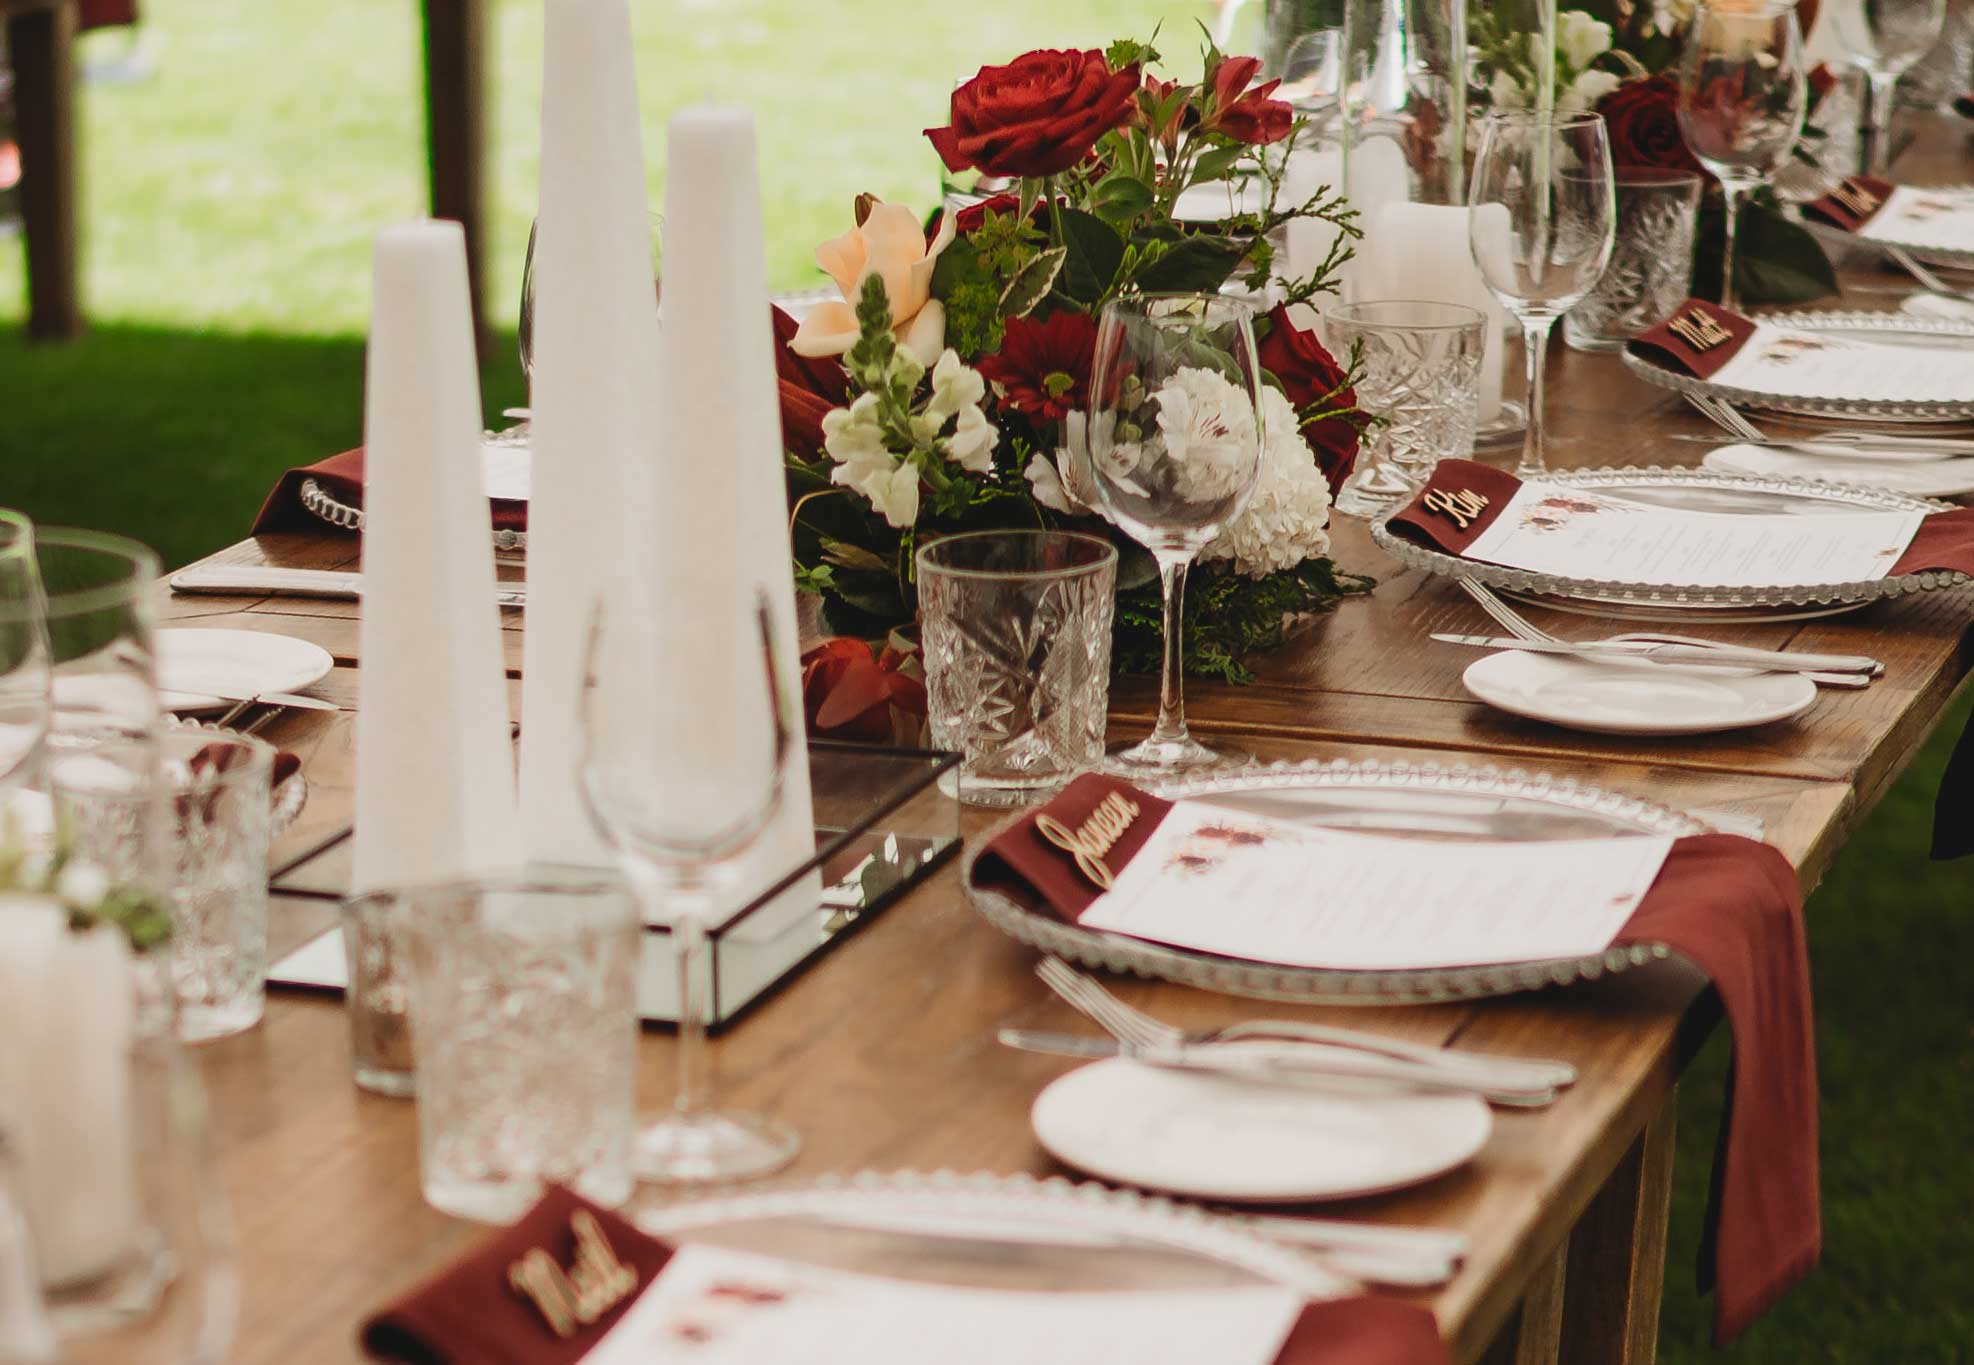 silk-estate-marquee-weddings-and-events-styling-and-hire-crockery-side-plate-1